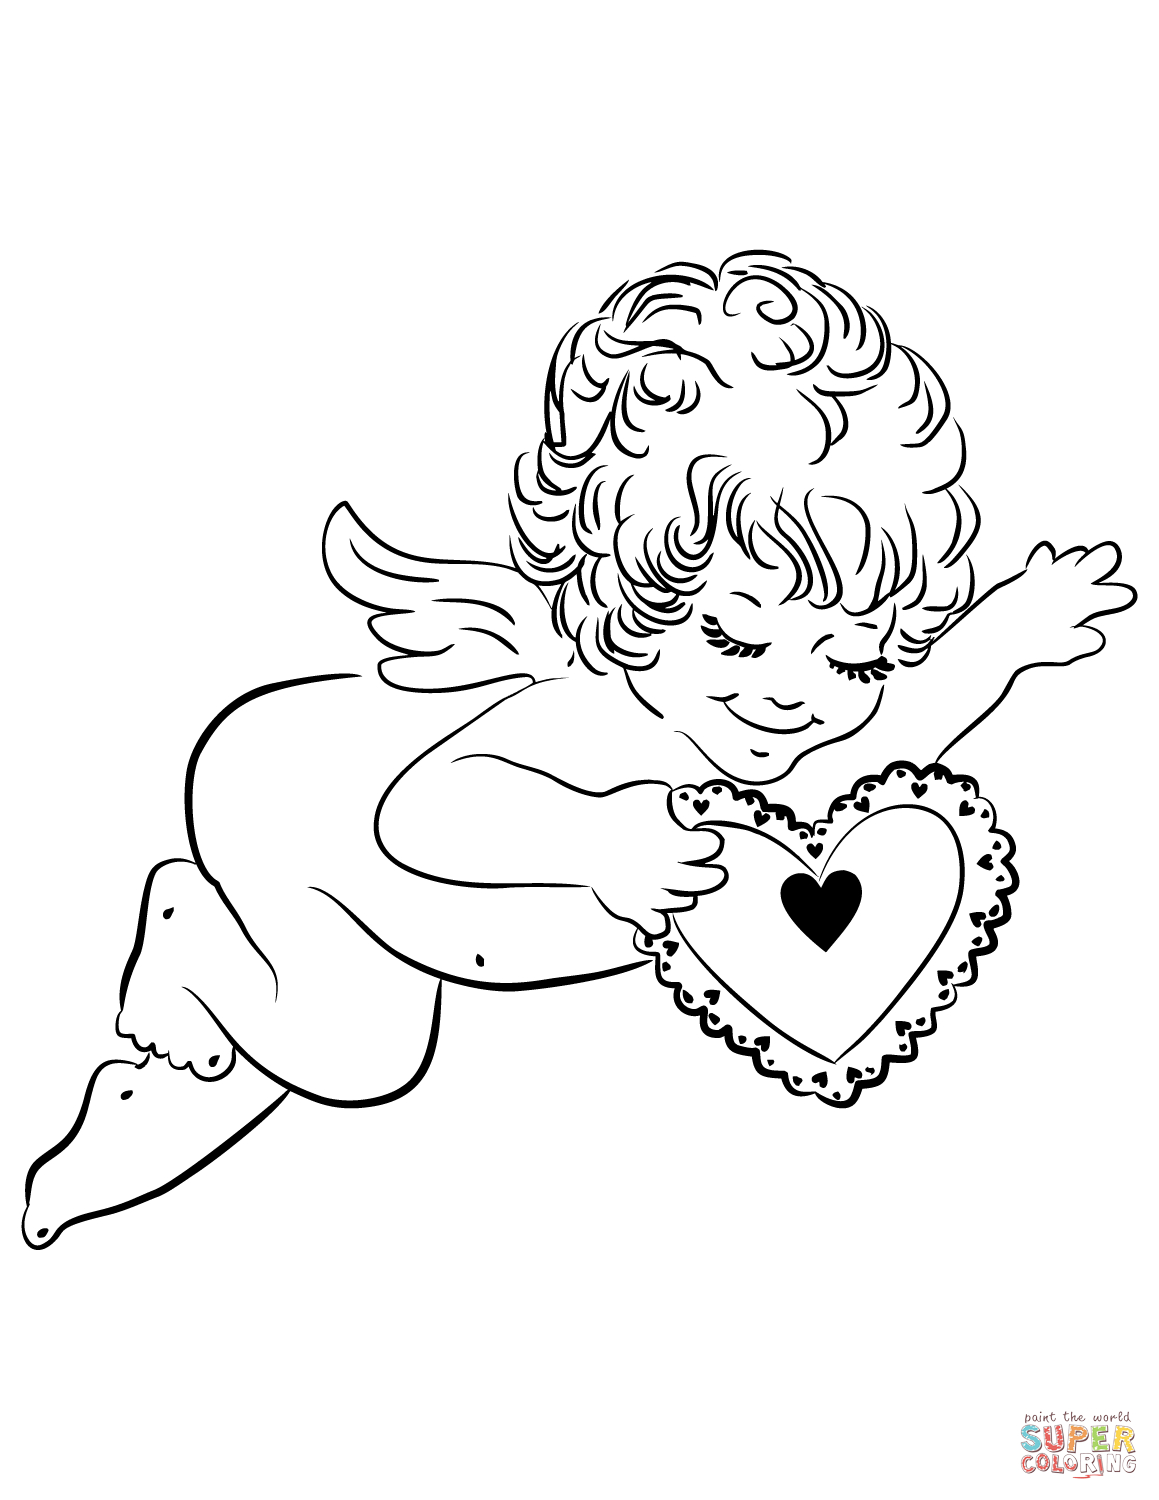 Cupid Coloring Pages | Free Printable Pictures - Free Printable Pictures Of Cupid